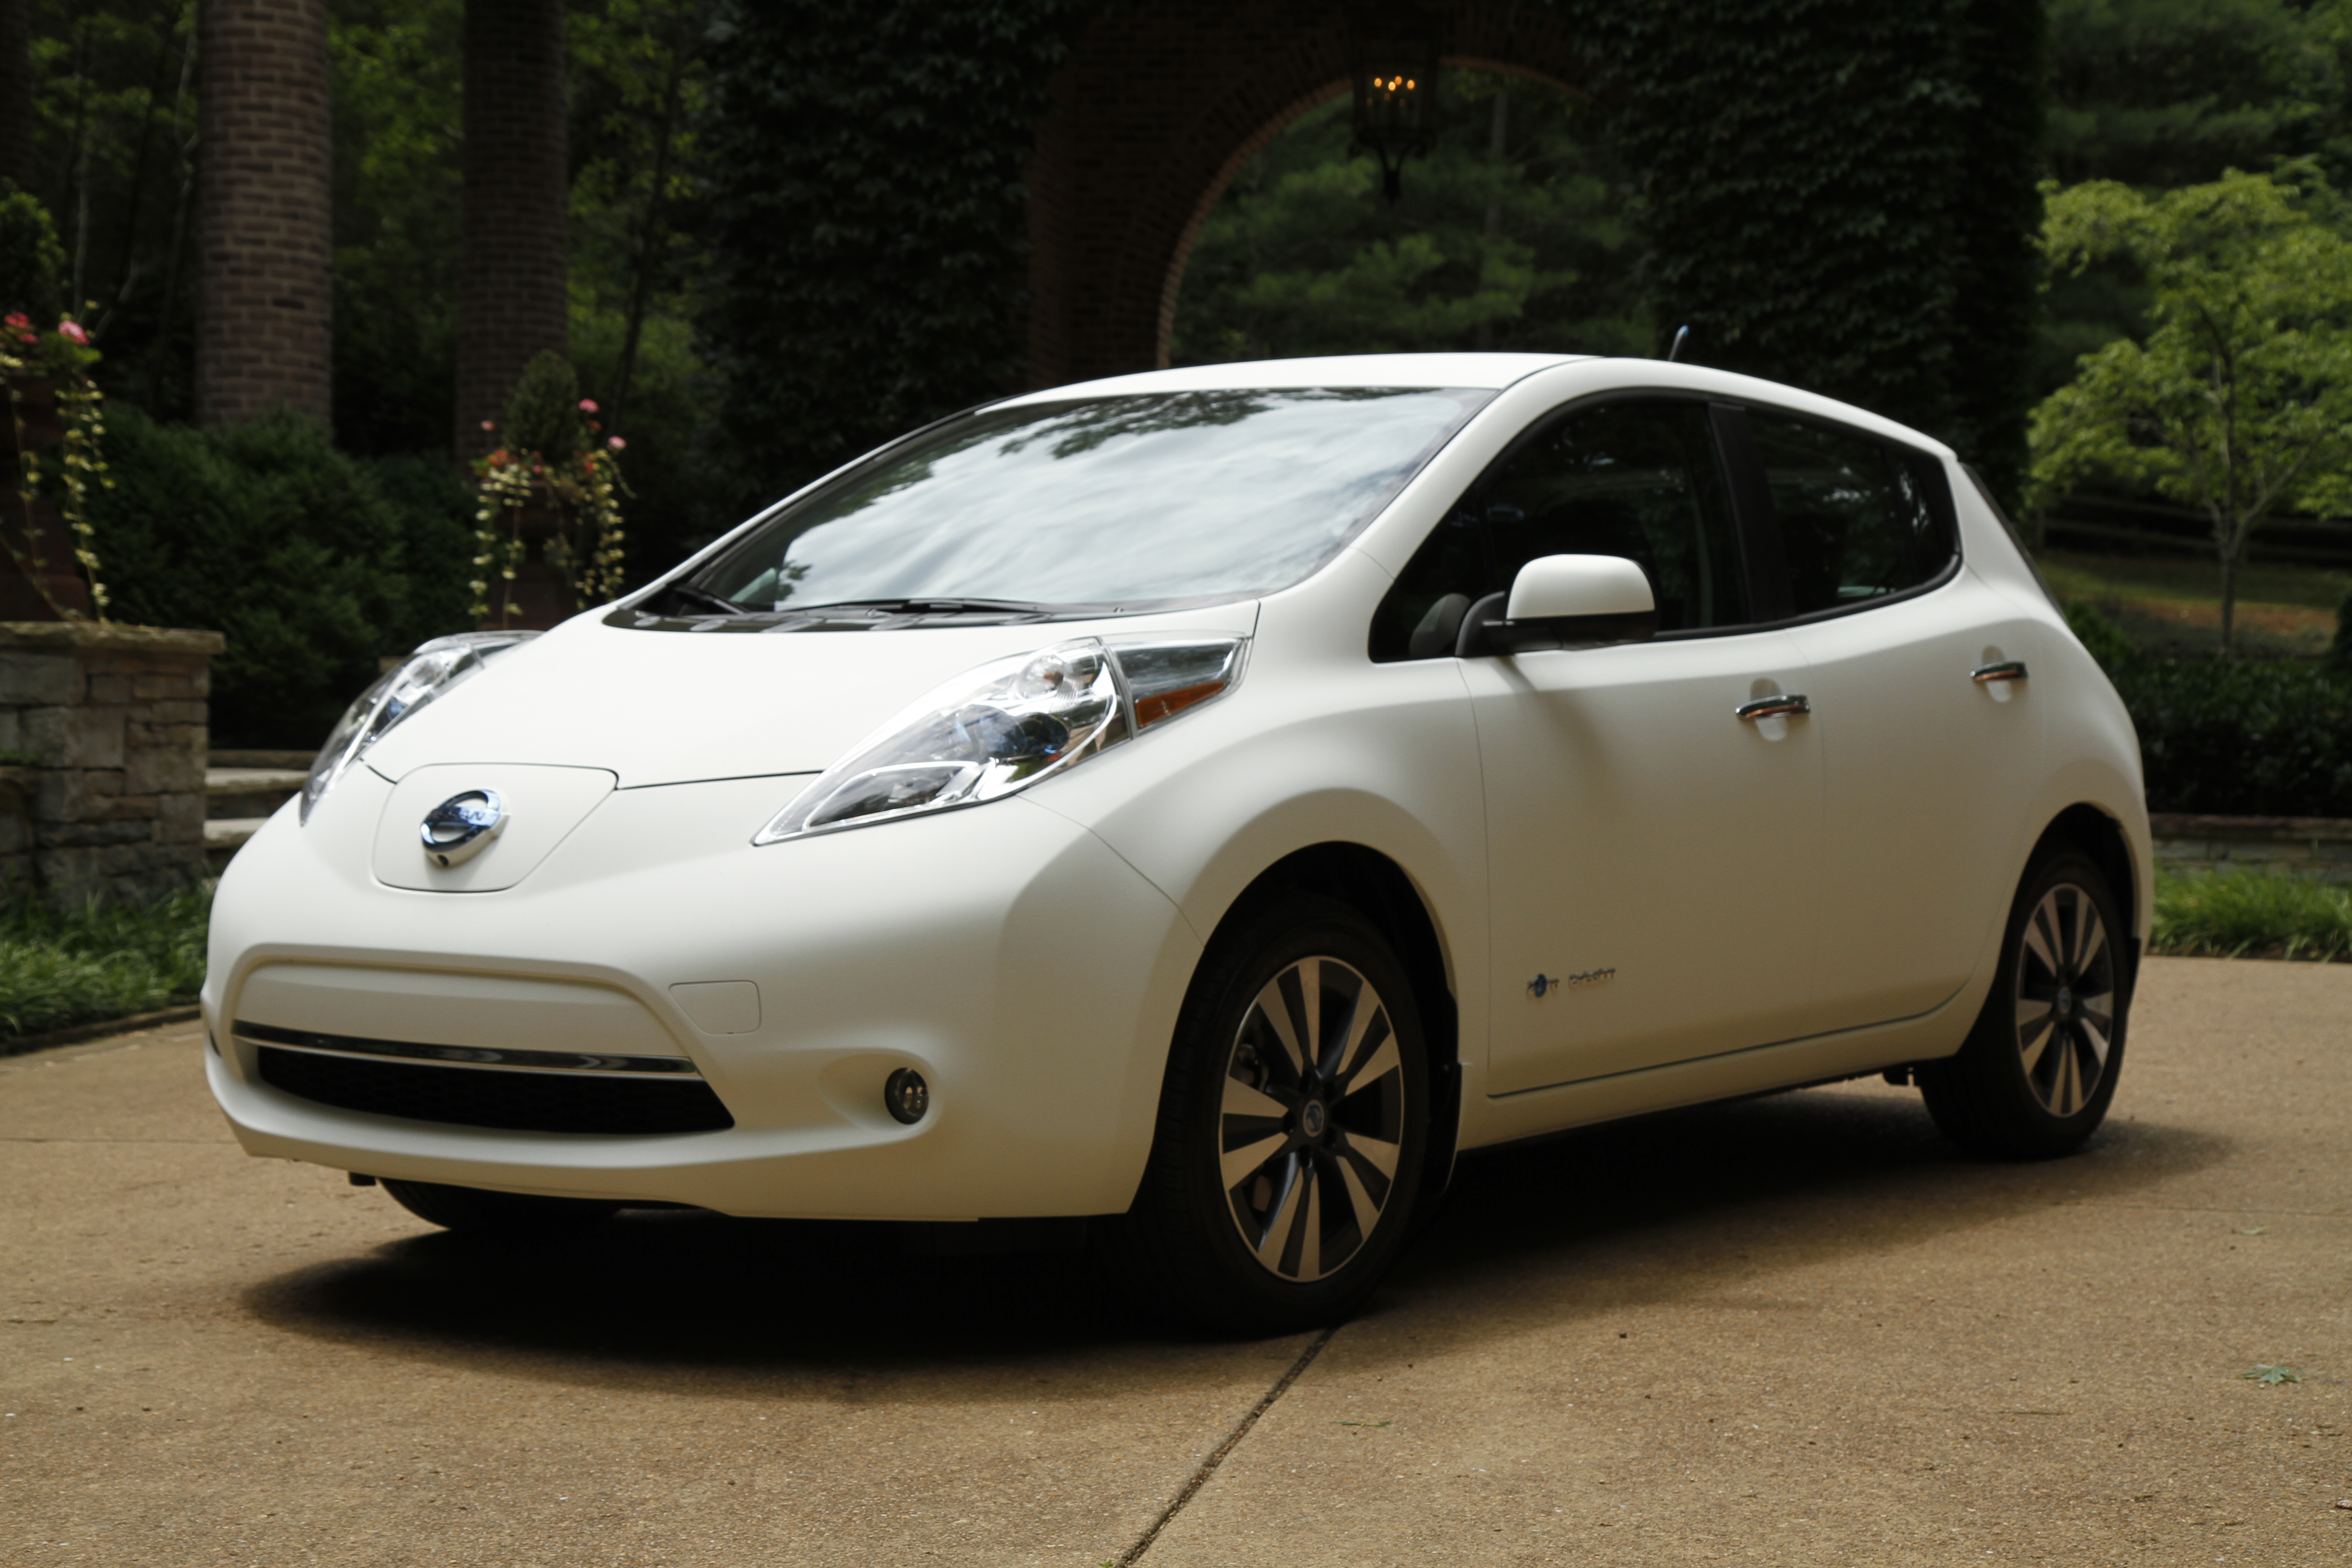 """Nissan Creates """"World's Cleanest Car"""" – a Zero Emissions Nissan LEAF with Self-Cleaning Nano-Paint Technology (Photo: Business Wire)"""